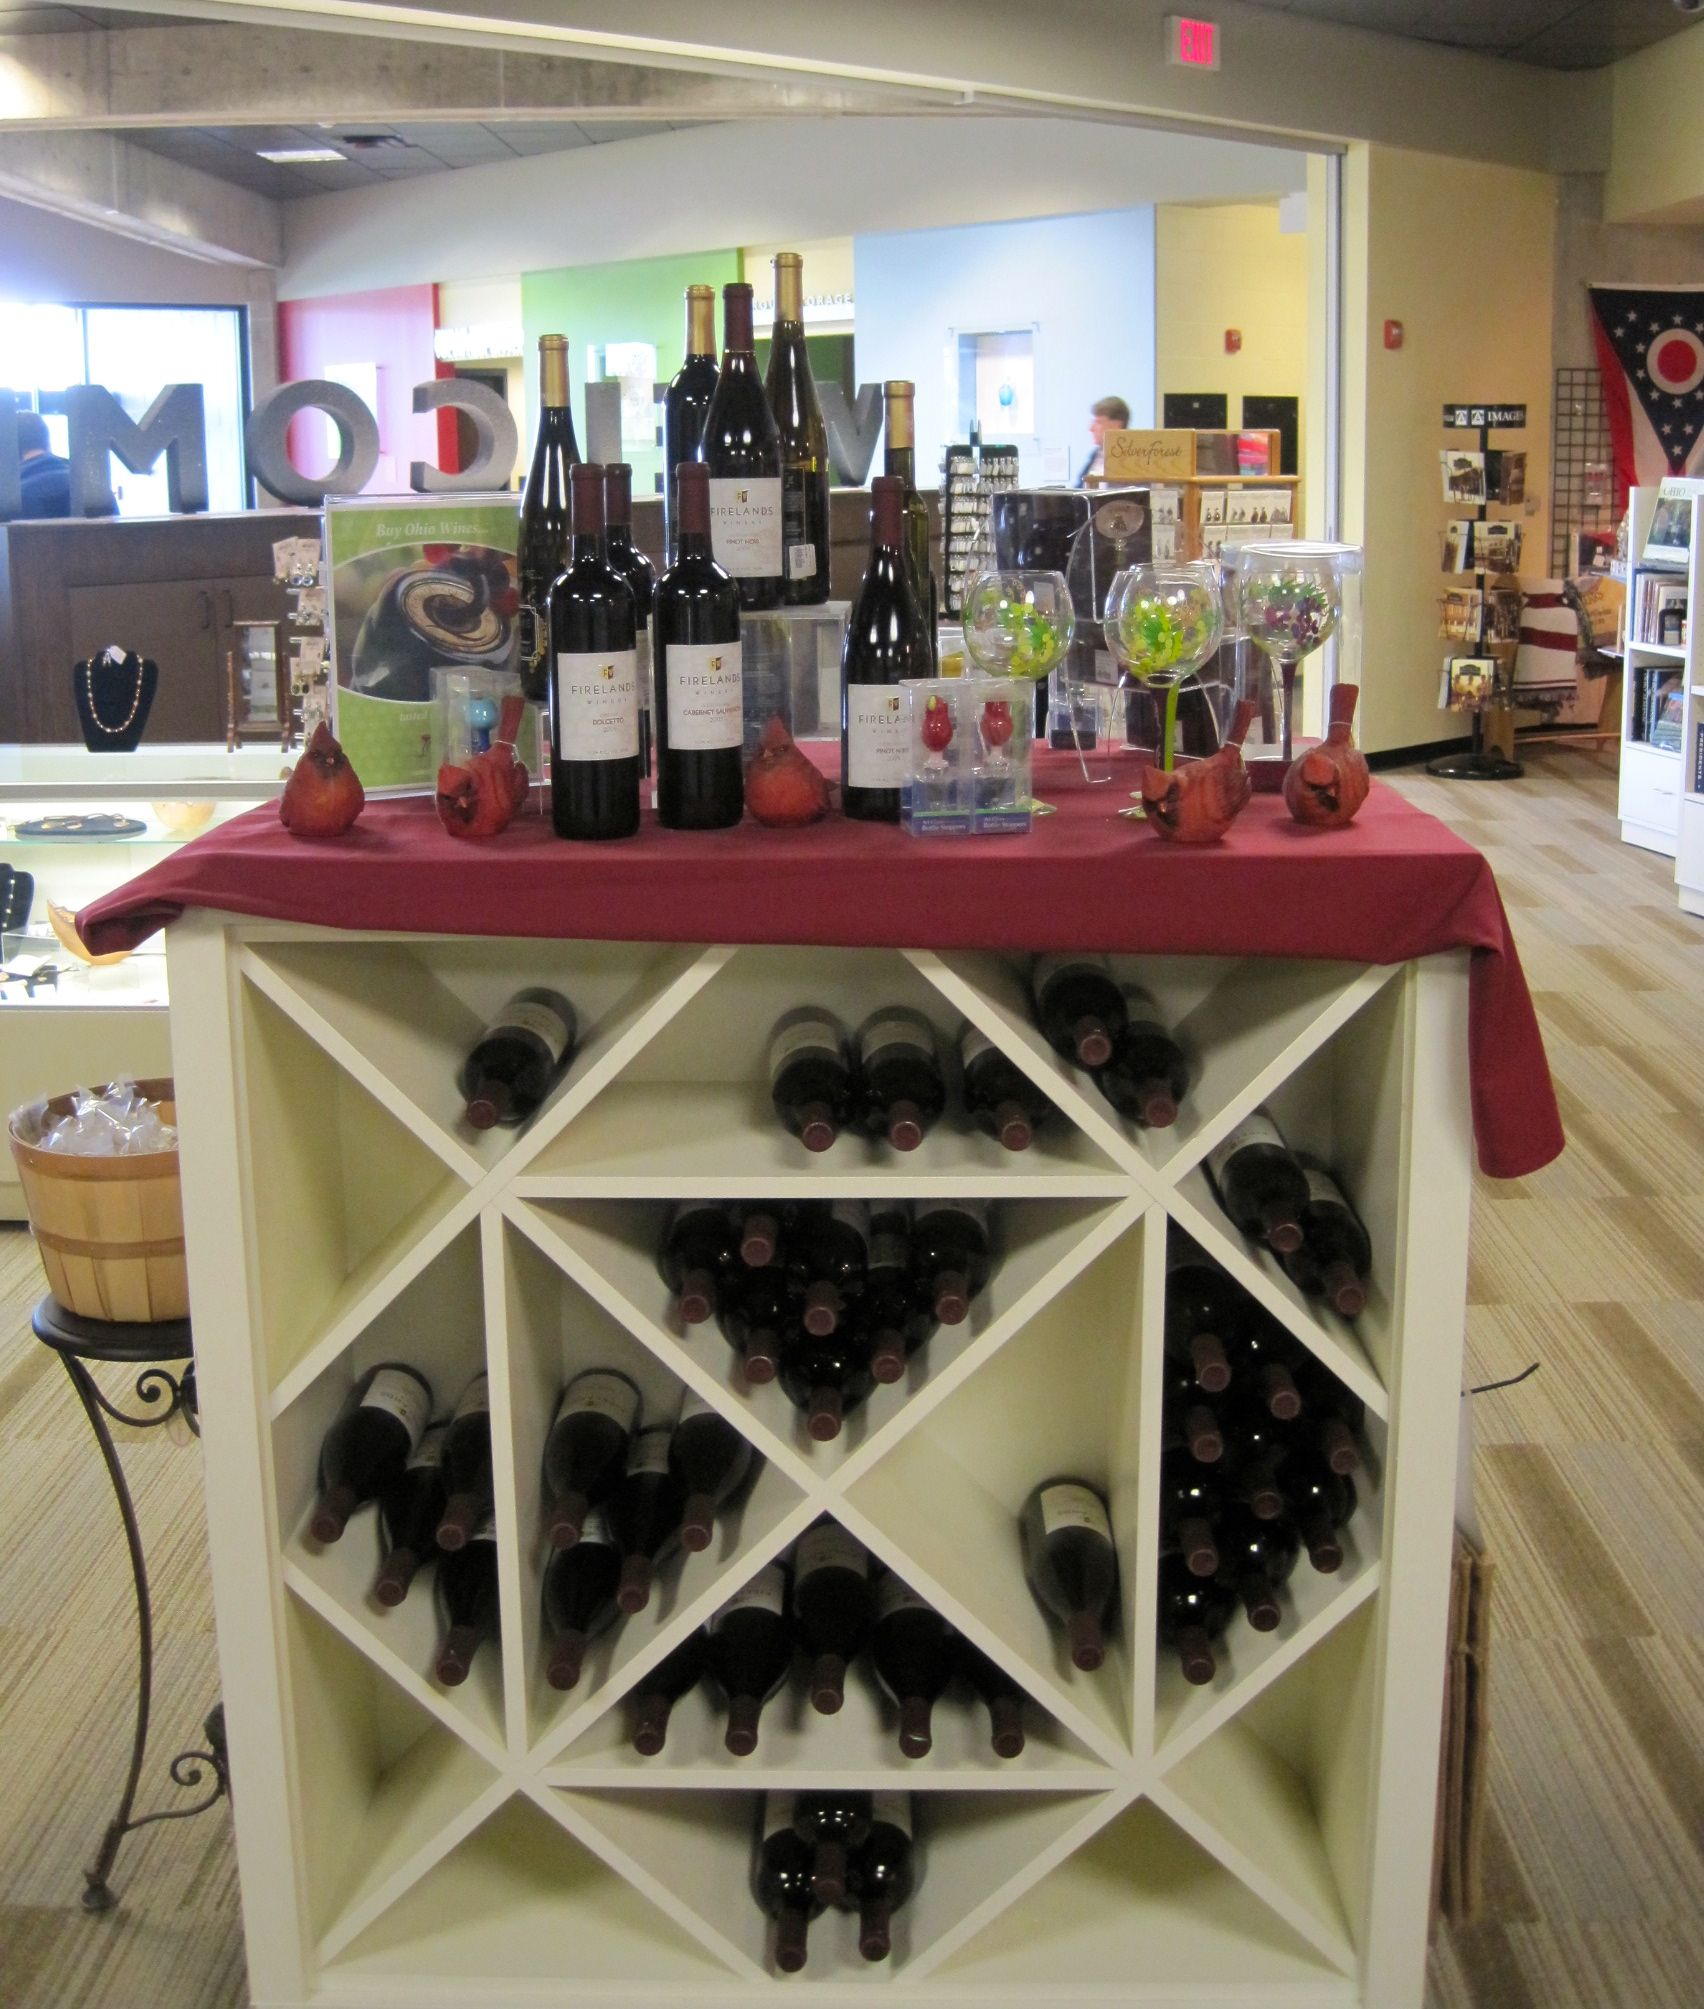 Some of the Ohio wines available for purchase at the Ohio History Store in the Ohio History Center, Columbus, OH. The store plans to sponsor wine tasting events in conjunction with Ohio wineries.